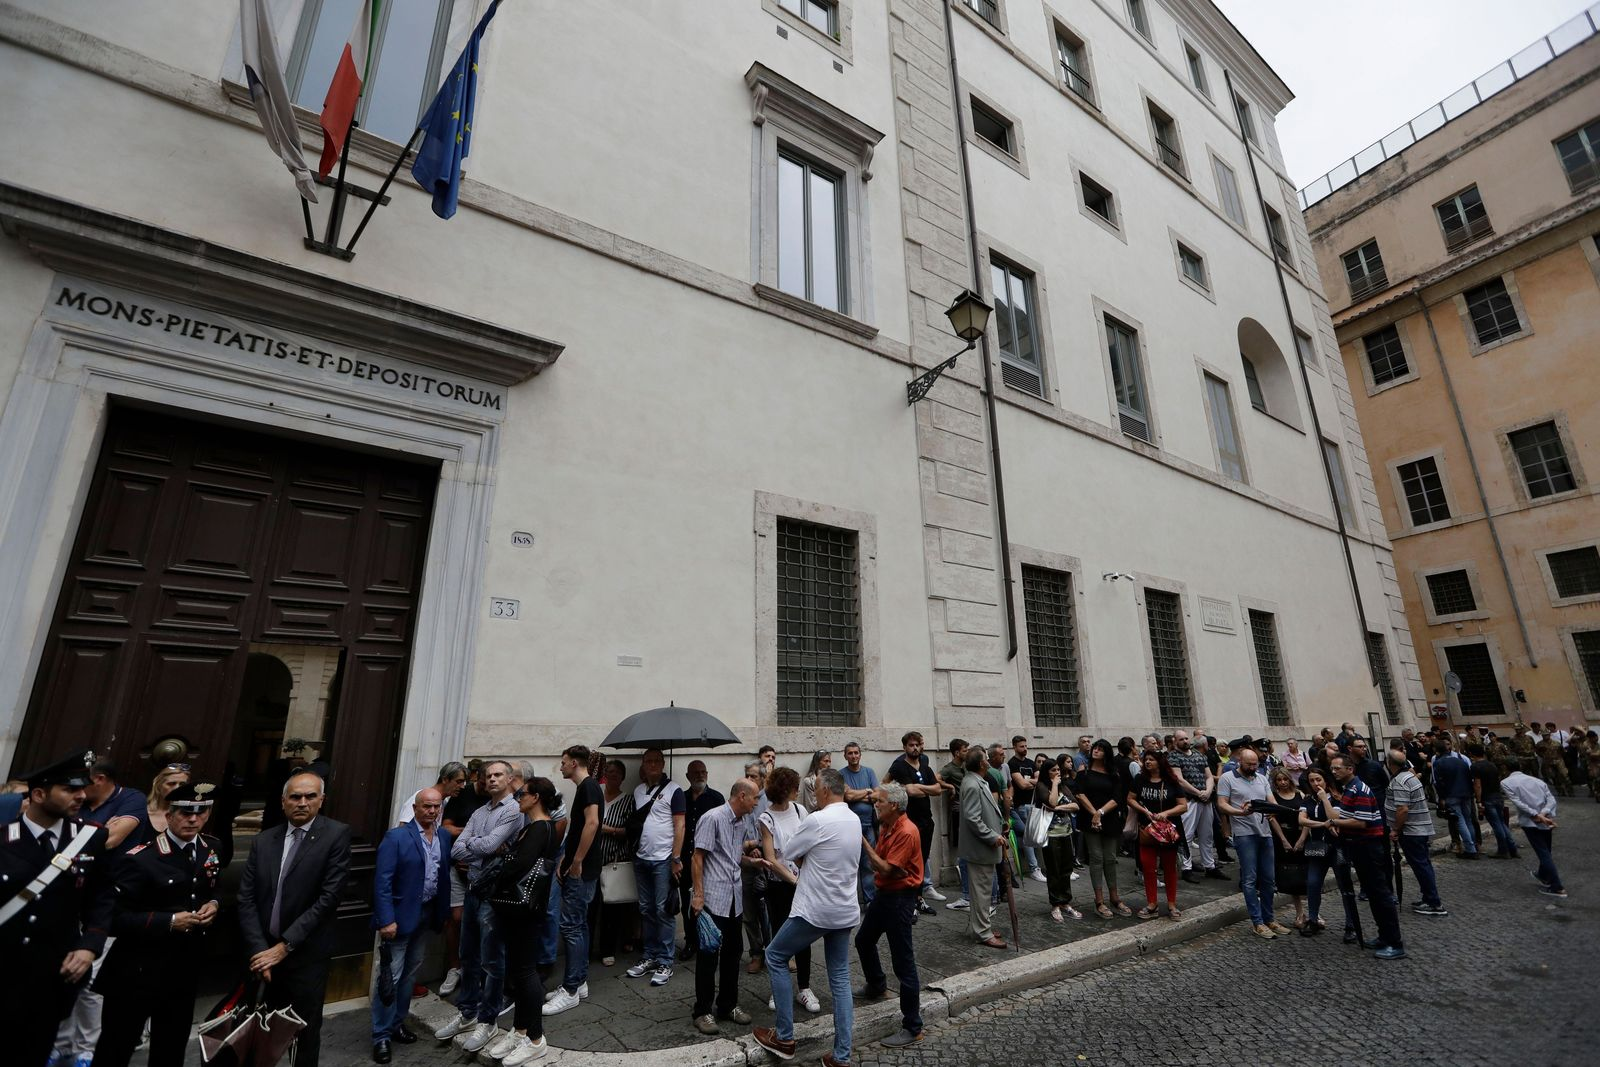 People line up to pay respect in the church where Carabinieri officer Mario Cerciello Rega was laid in state, in Rome, Sunday, July 28, 2019. In a statement Saturday, Carabinieri officers investigating the death of Cerciello Rega, 35, said two young American tourists have been detained for alleged murder and attempted extortion. (AP Photo/Andrew Medichini)